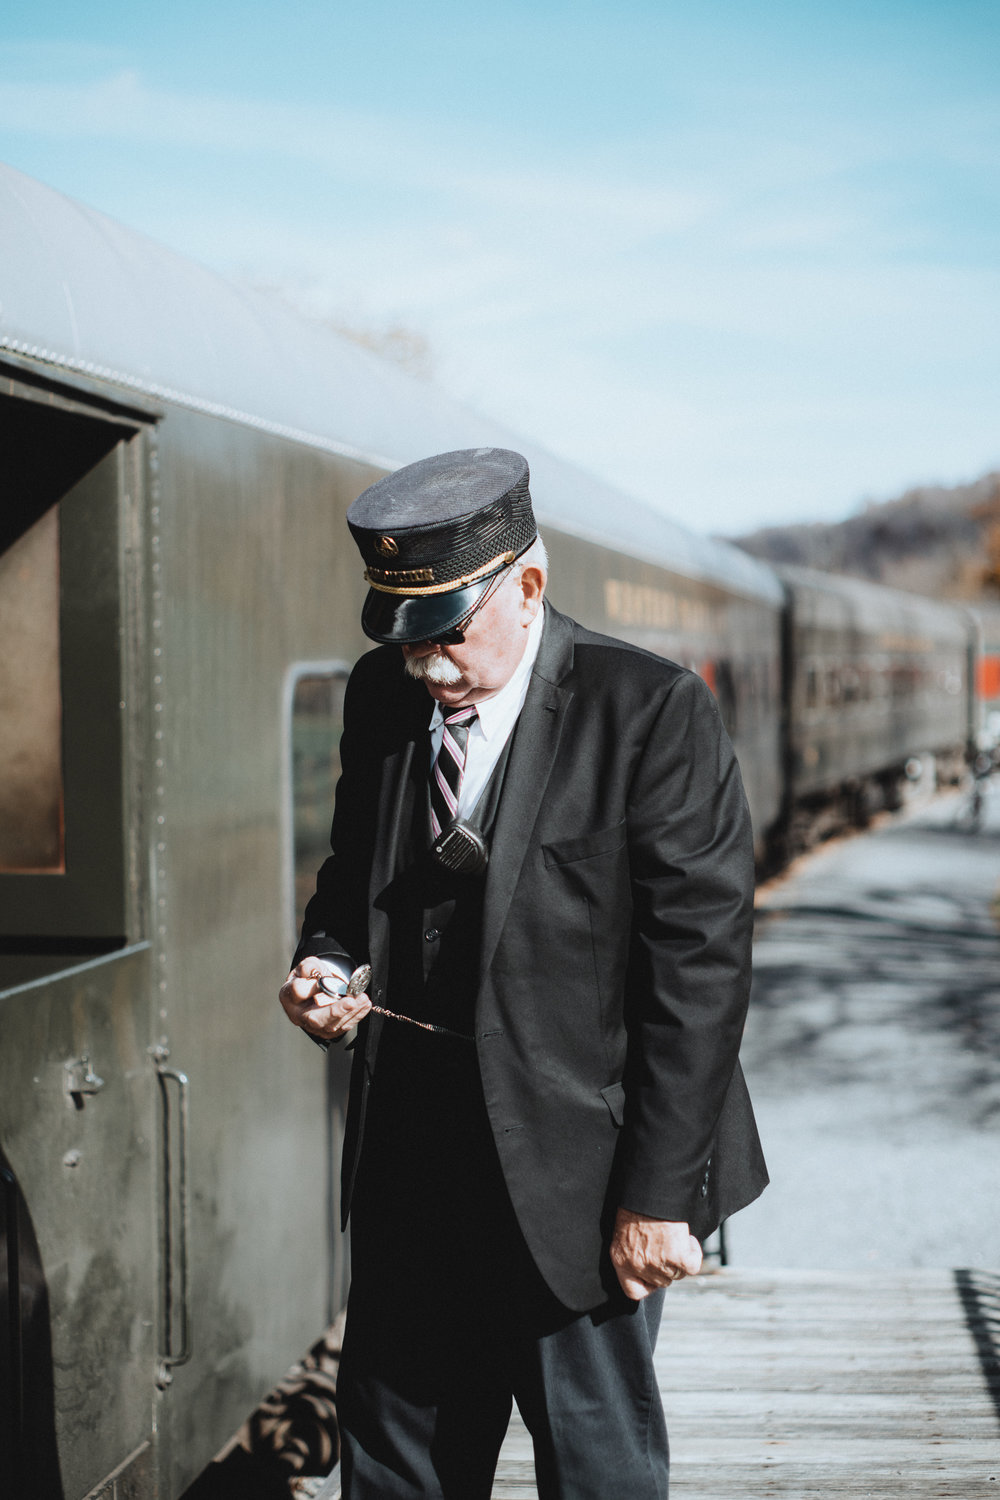 Personal work shot on the  Western Maryland Scenic Railroad , in Frostburg, MD.